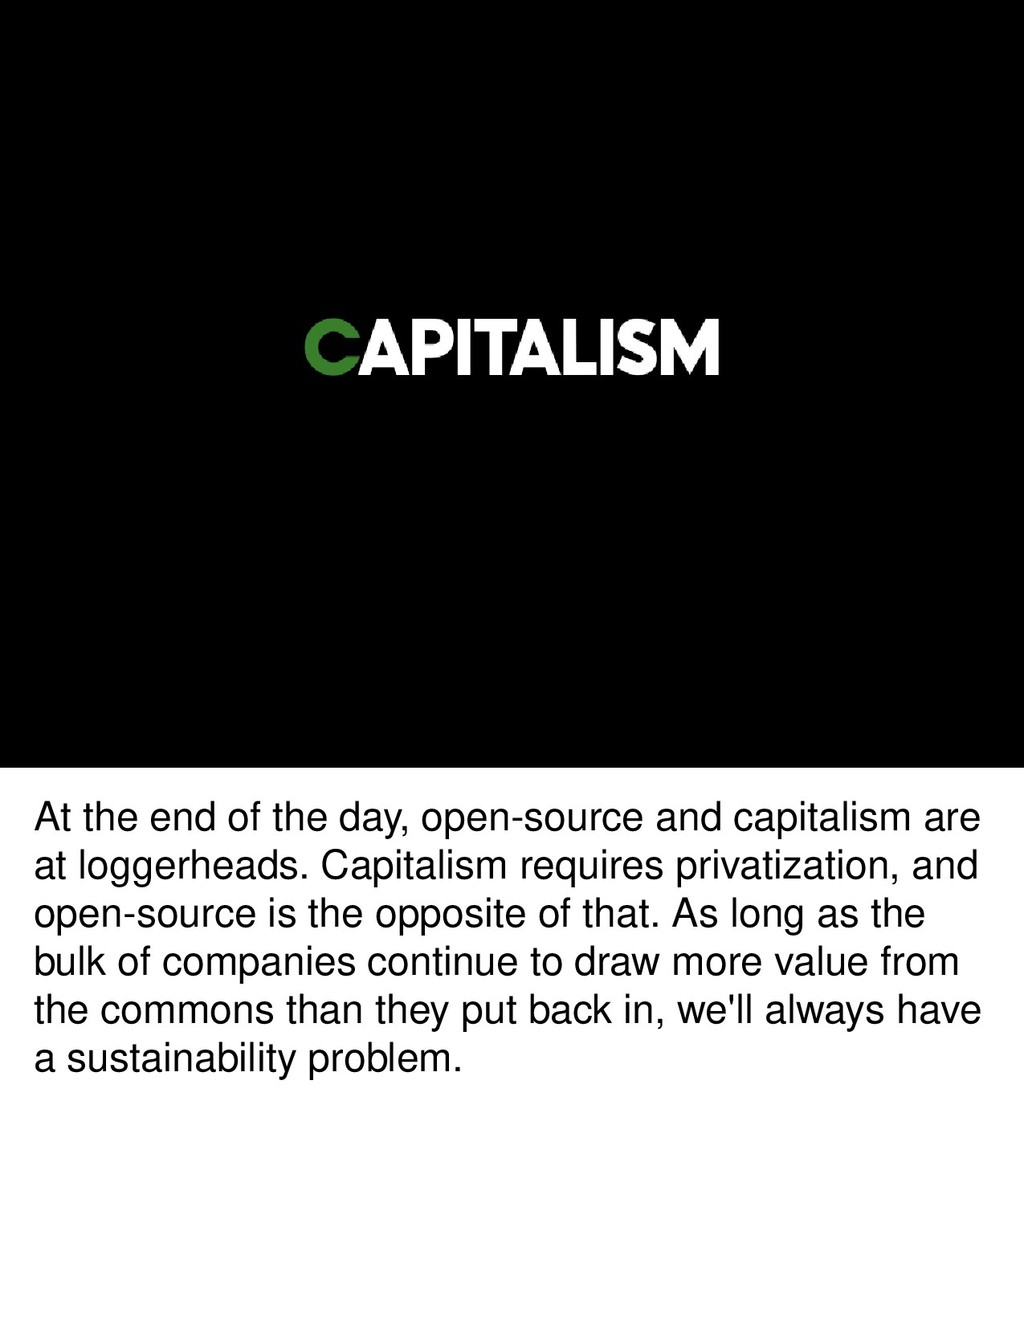 At the end of the day, open-source and capitali...